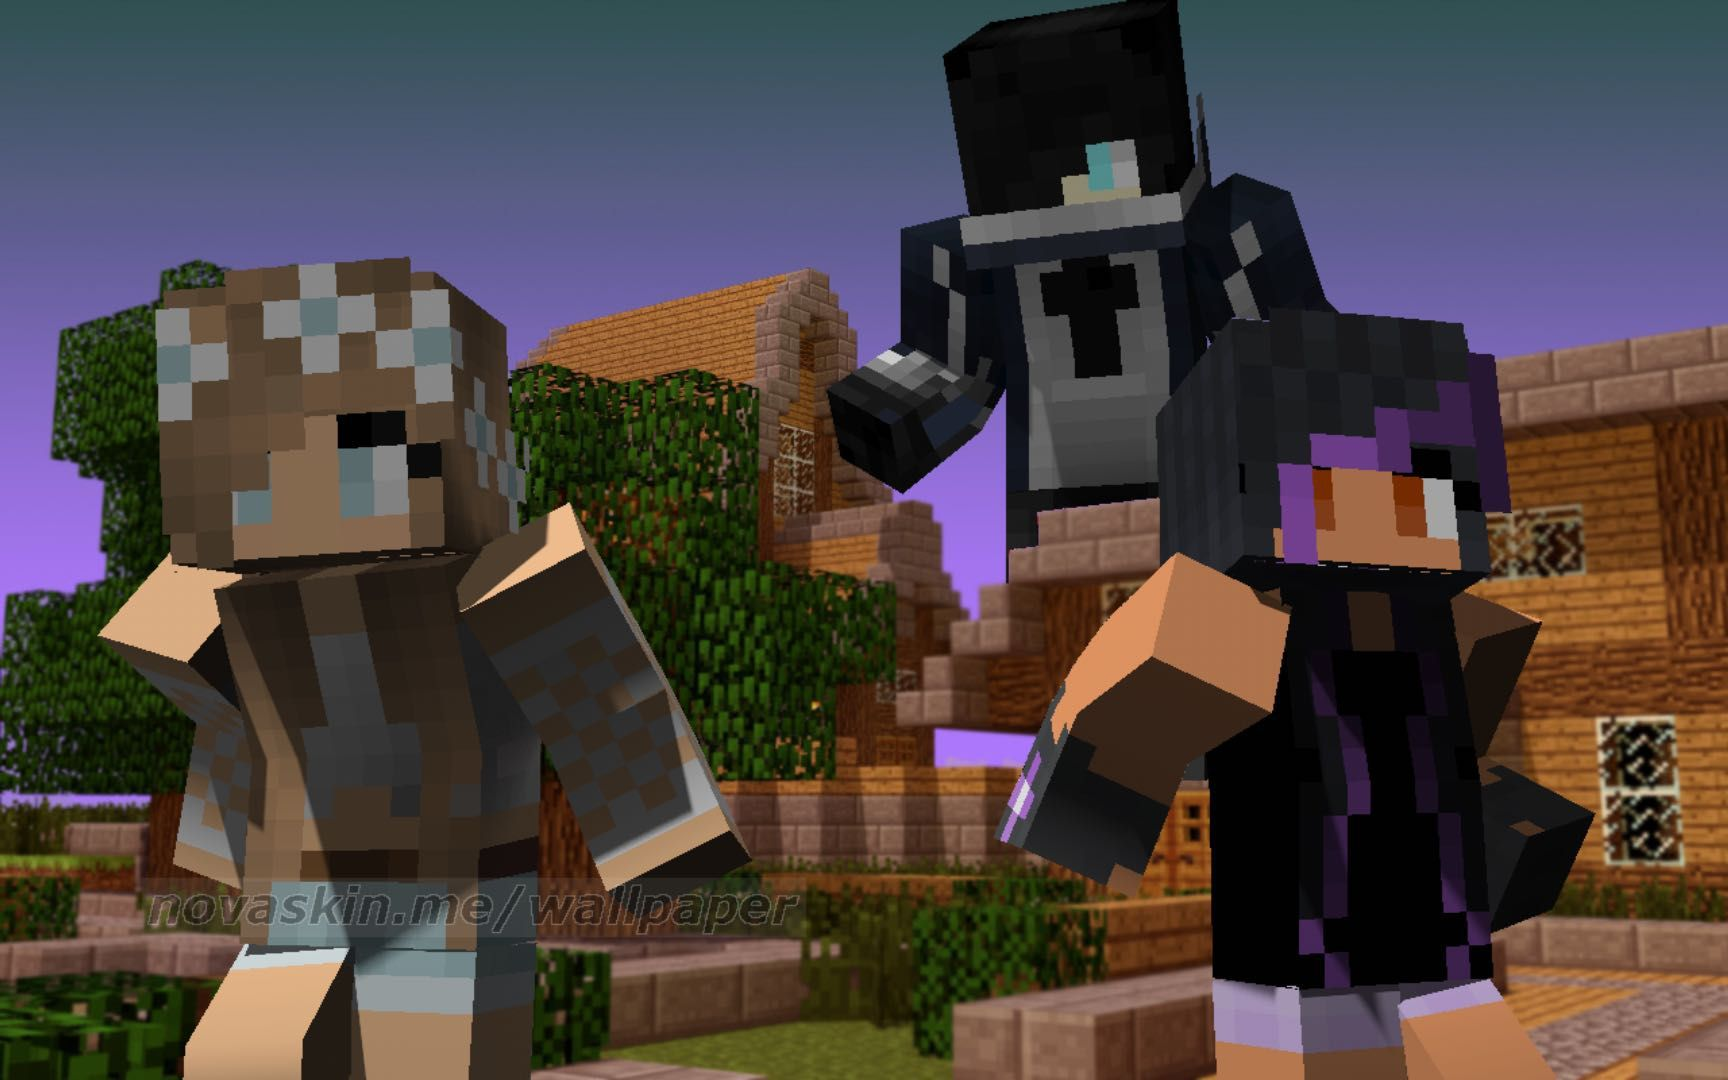 THE PICTURES OF ME AND MC DIARIES ME AND APHMAU AND ZANE